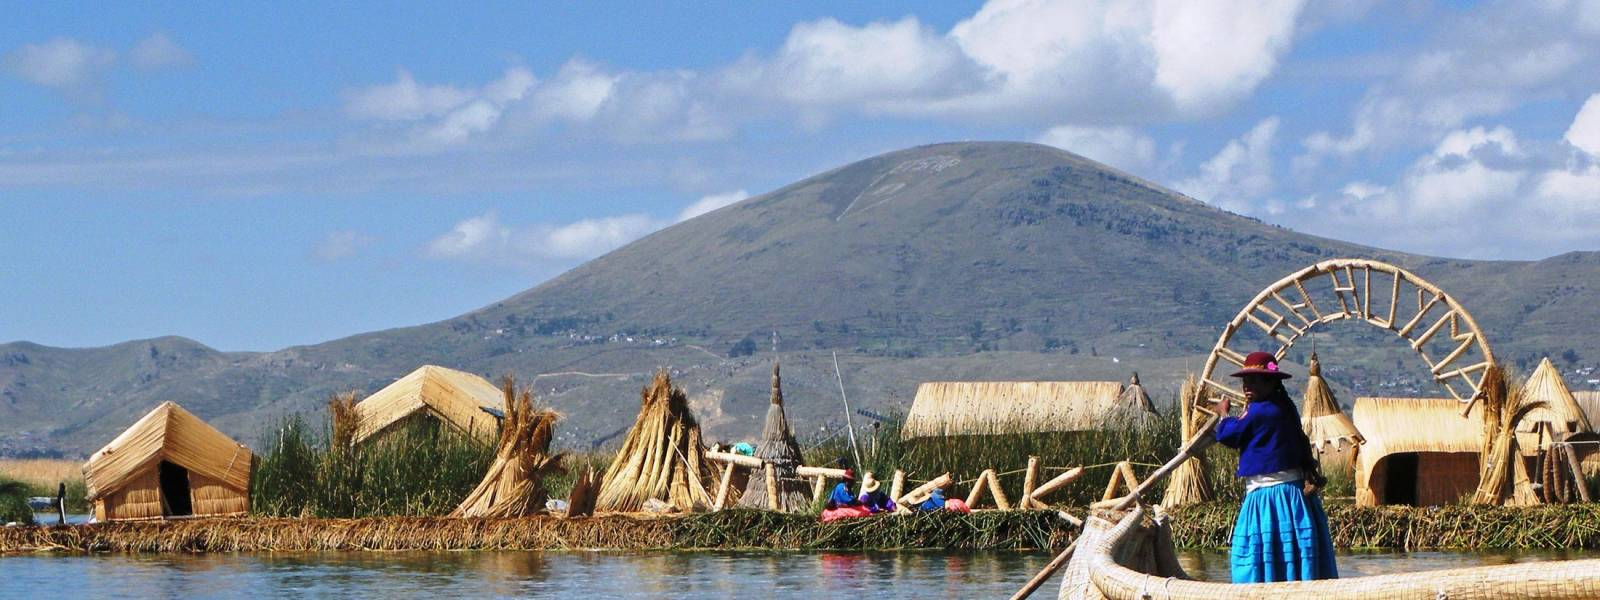 a small boat in a body of water with Lake Titicaca in the background